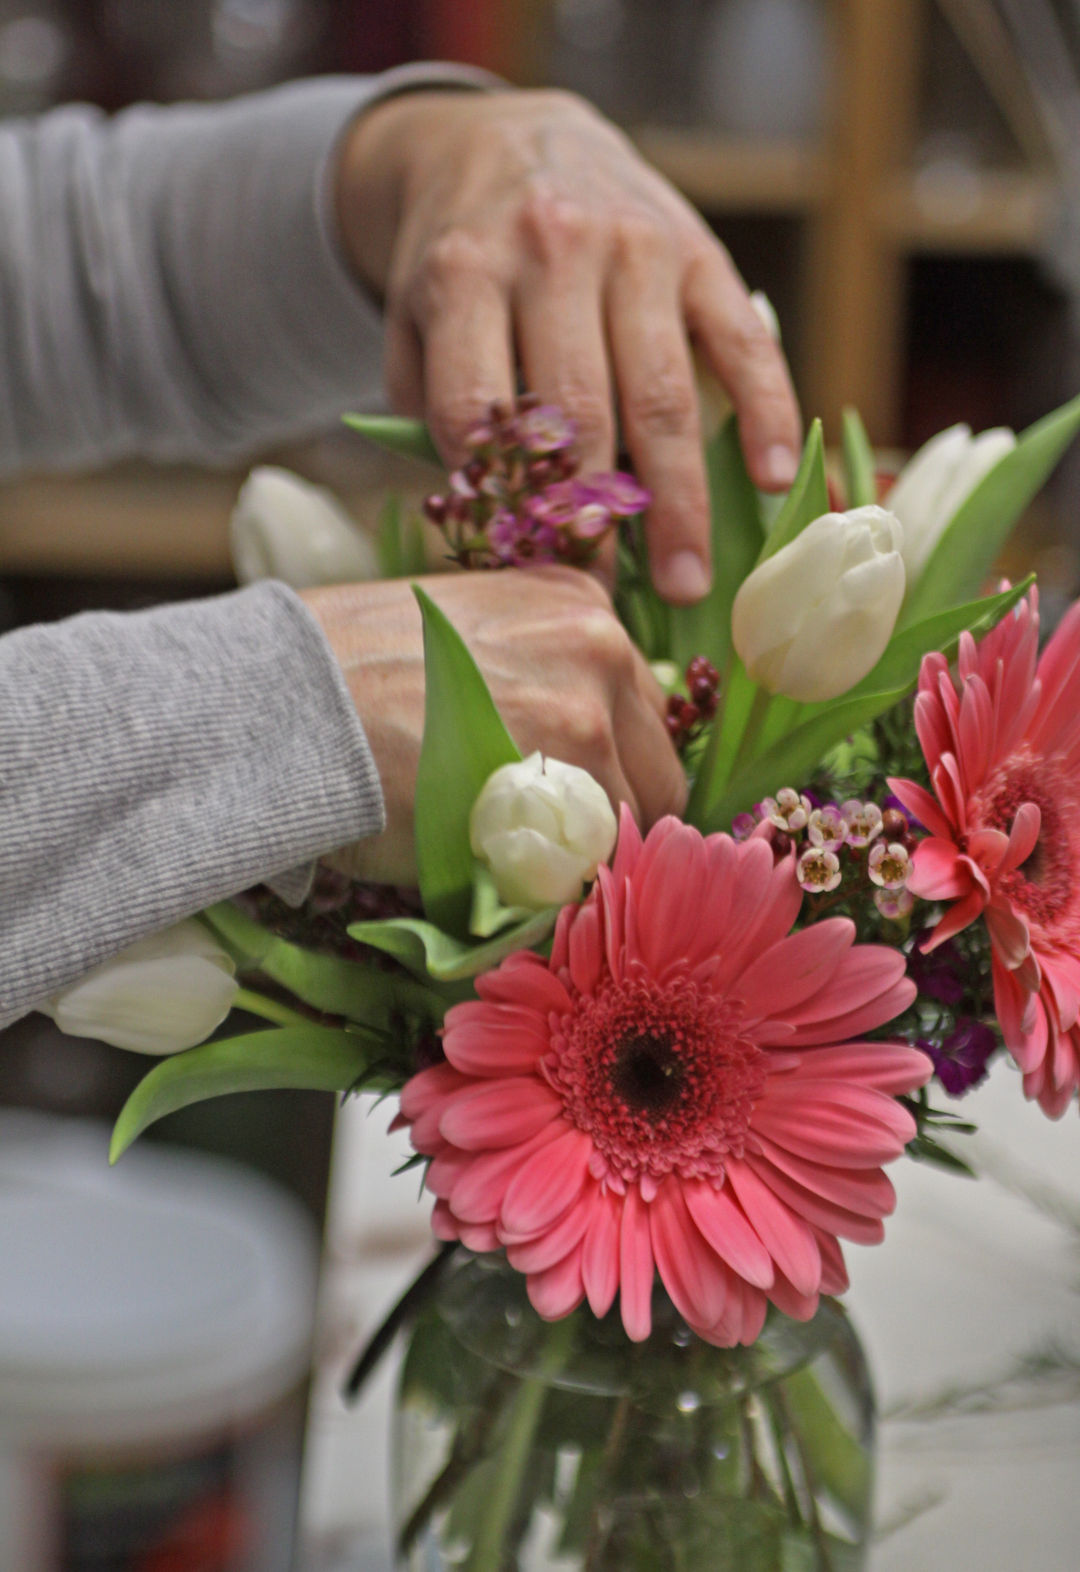 Florist talks about busiest time of year